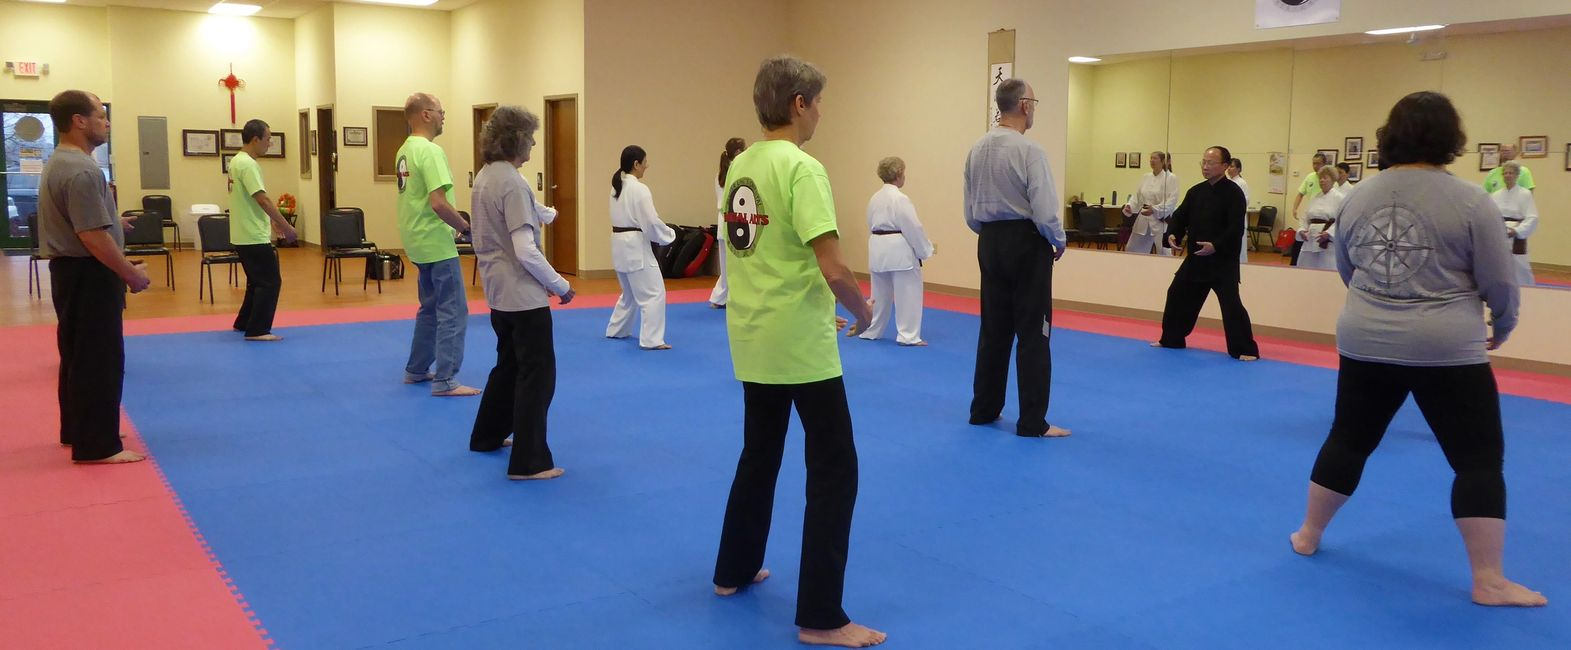 Tai Chi for Health students stand and meditate with instructor.  Tai chi studio with class practicing standing meditation (zhan zhuang) with Master Ling.